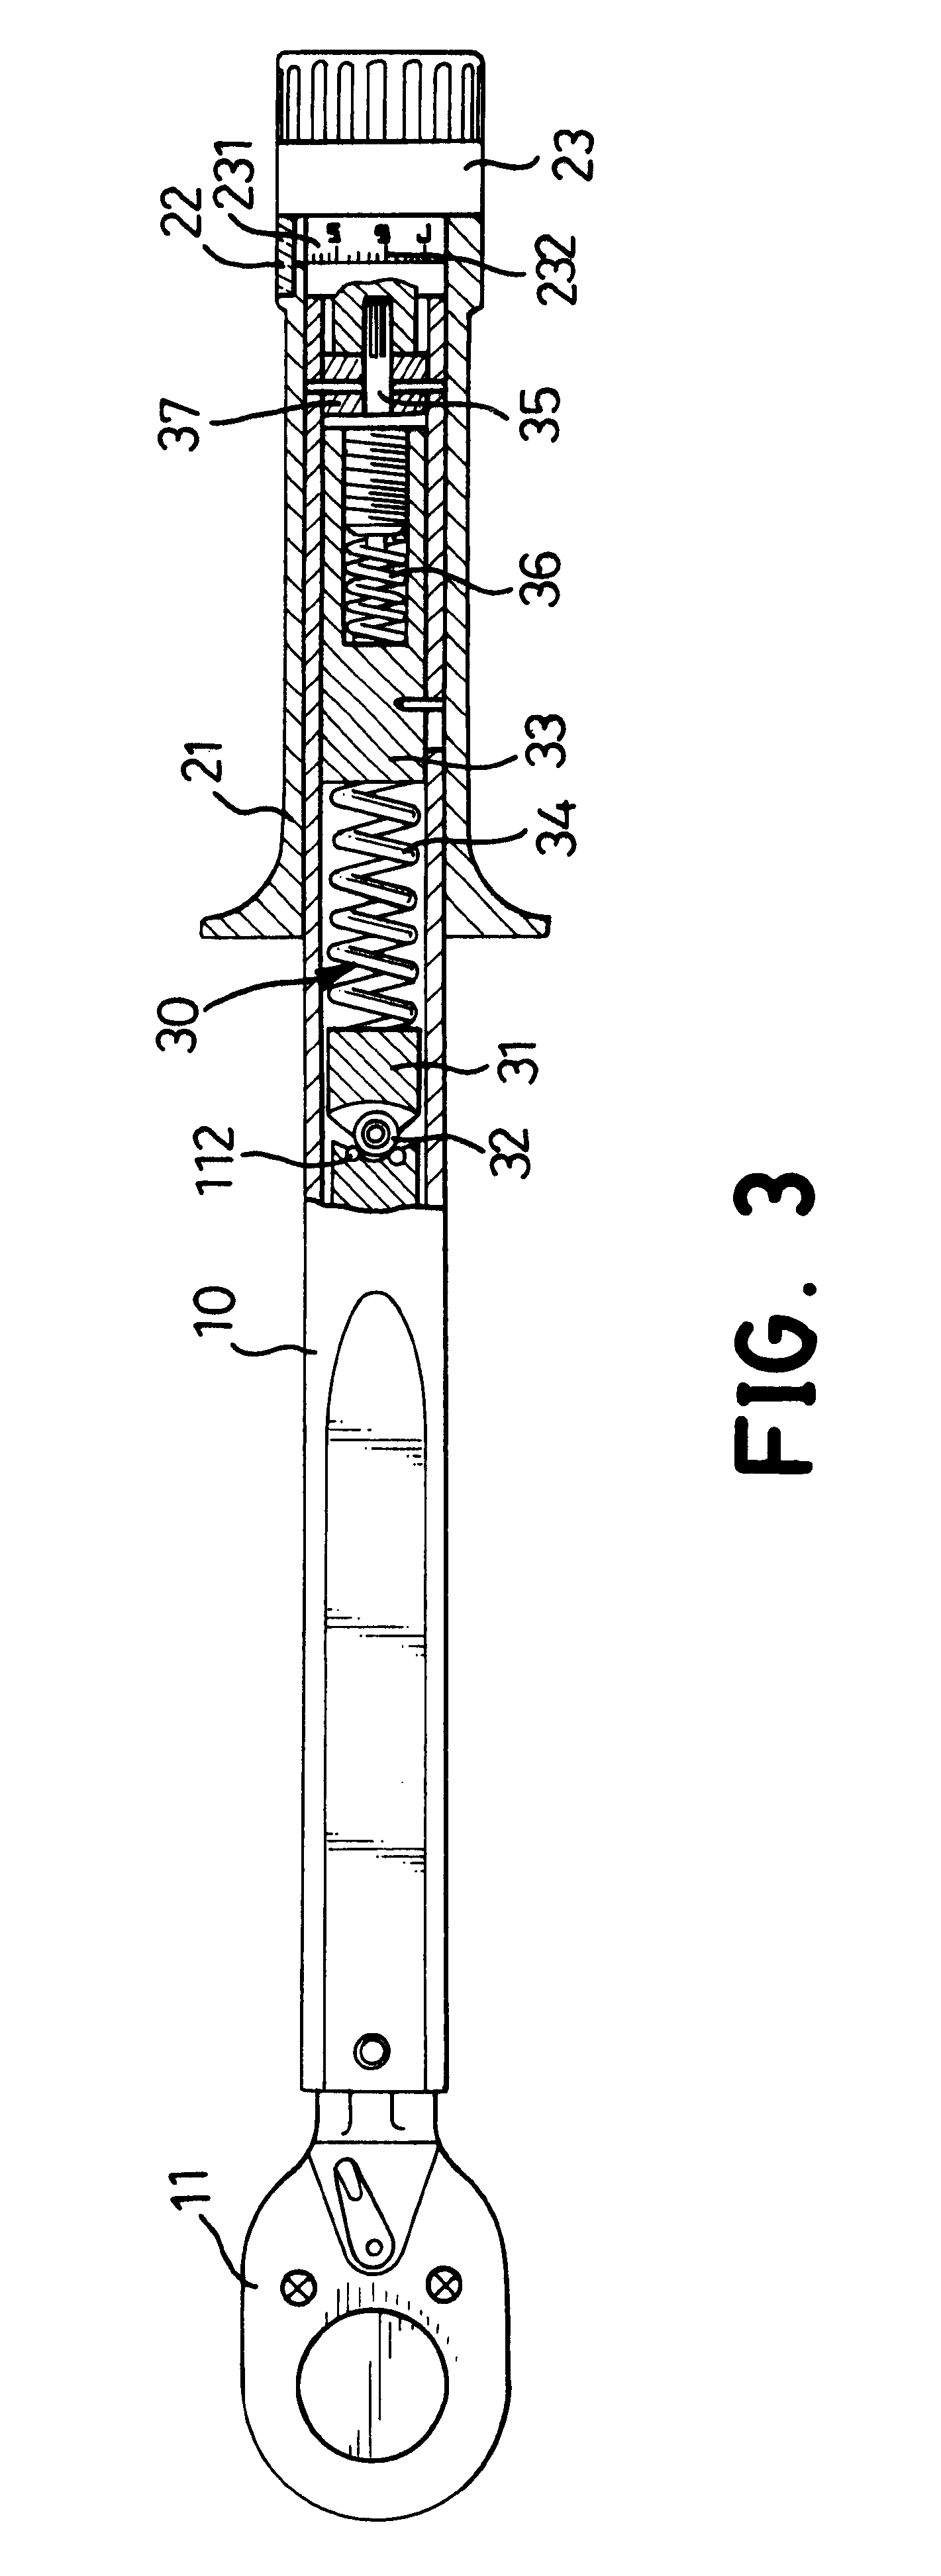 Patent US6722235 - Torque wrench with a scale - Google Patents